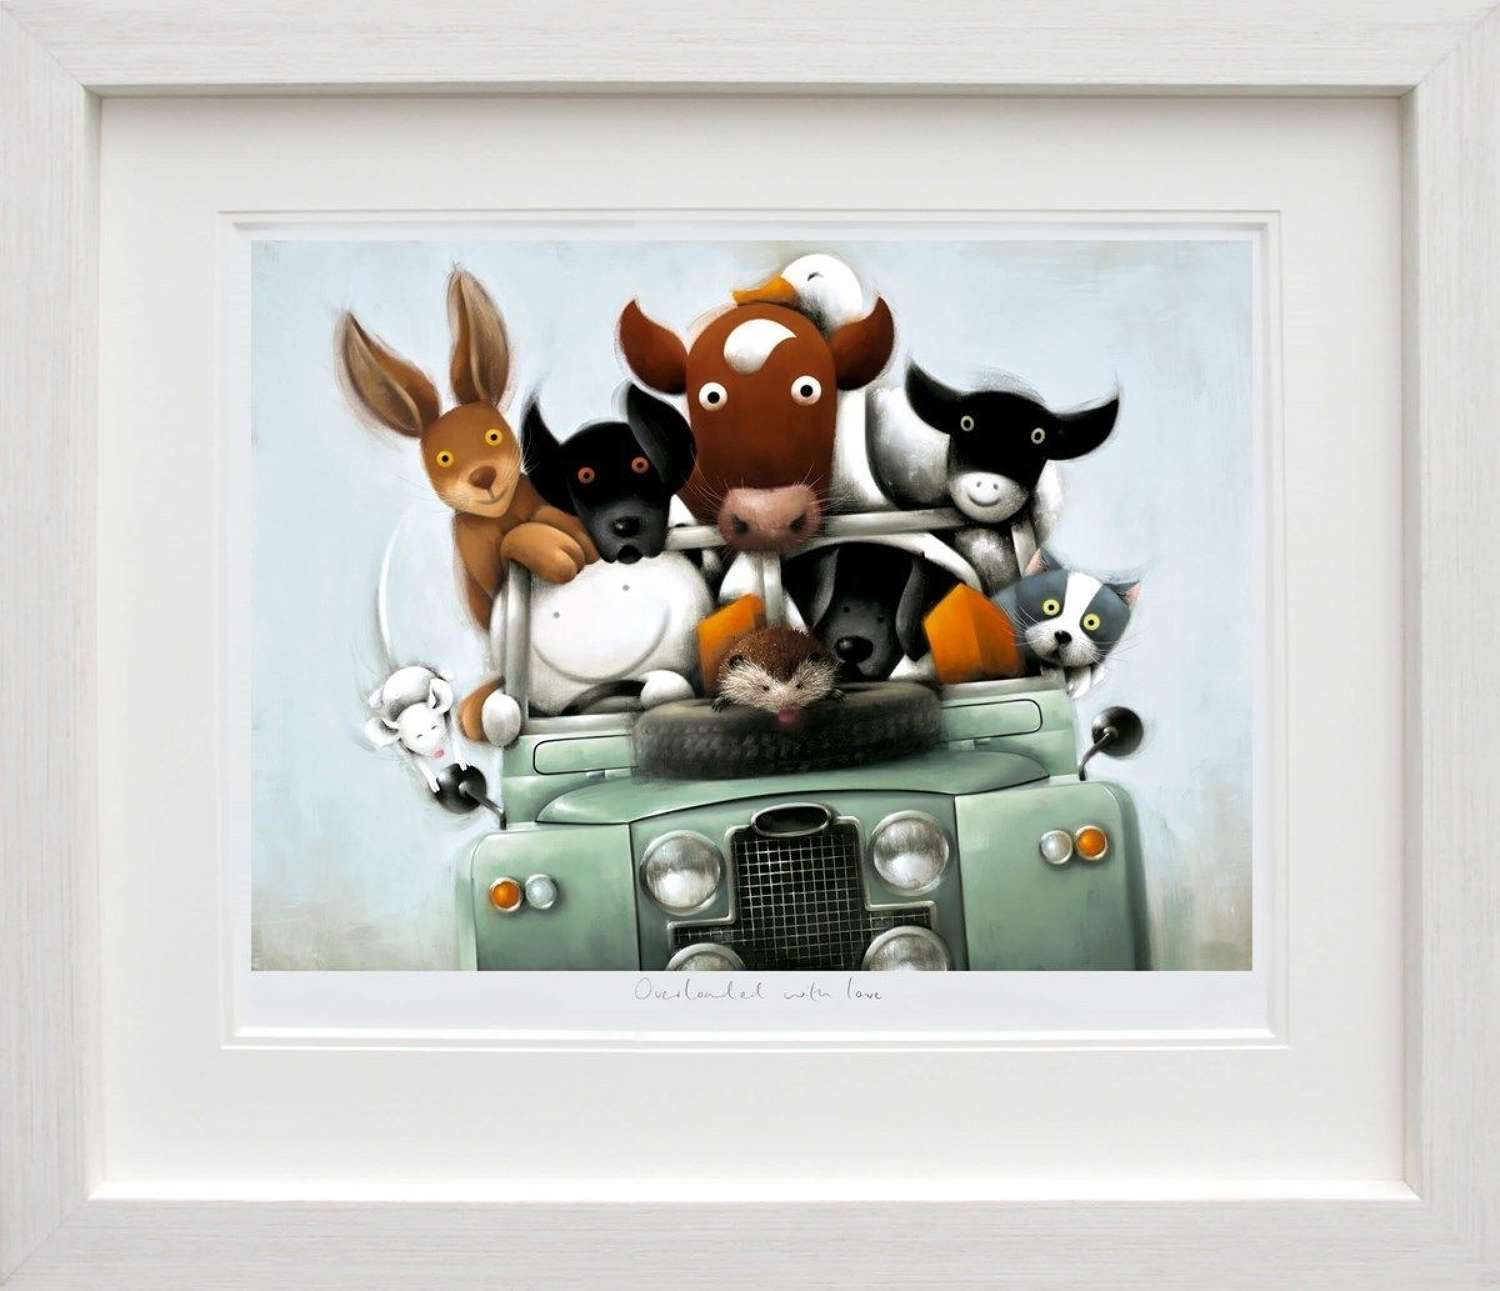 Overloaded with Love - Framed Art Print By Doug Hyde